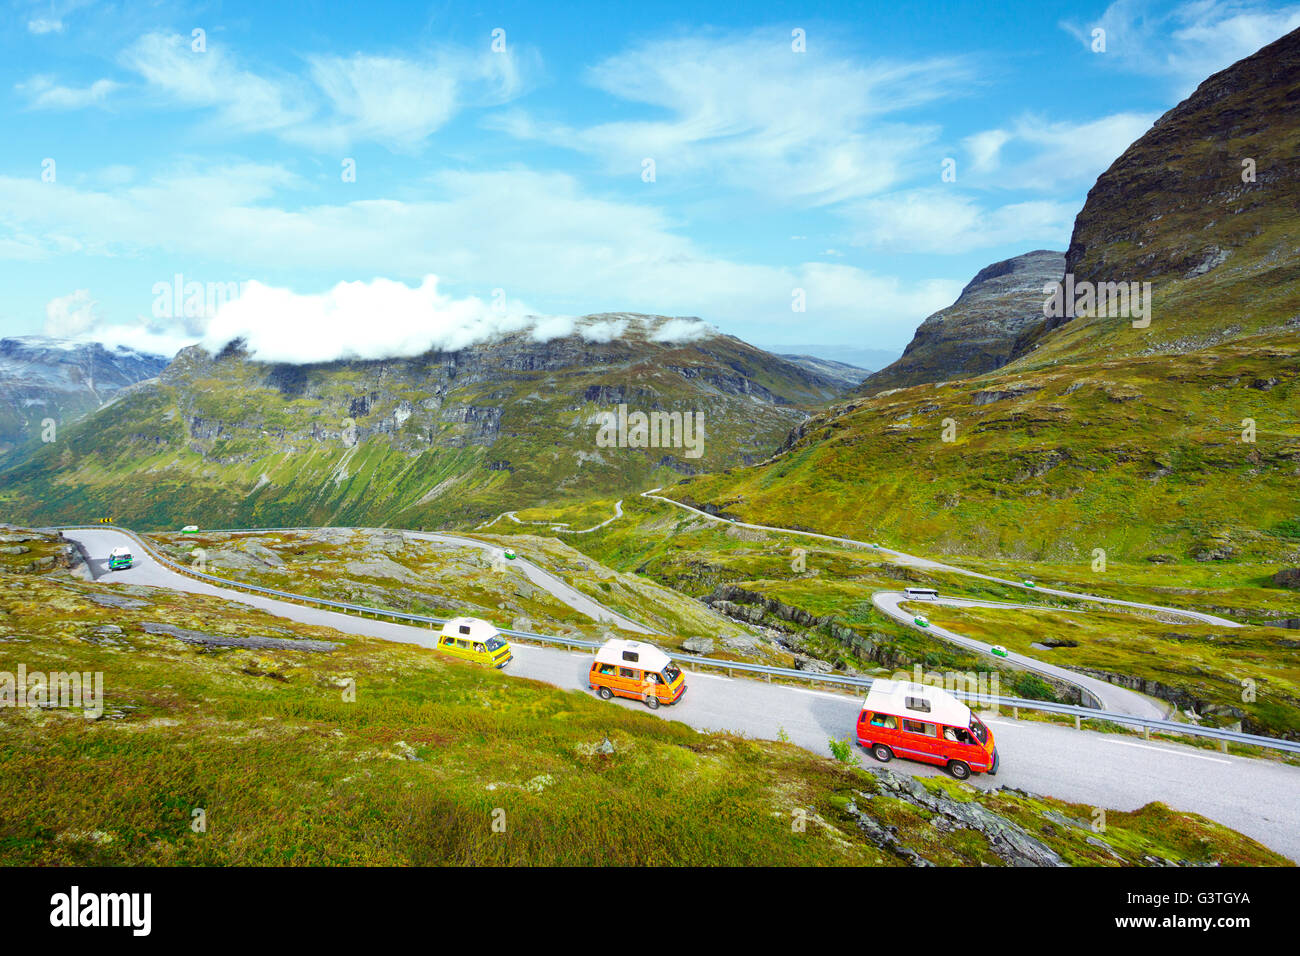 Norway, More og Romsdal, Sunnmore, Elevated view of cars on mountain road - Stock Image